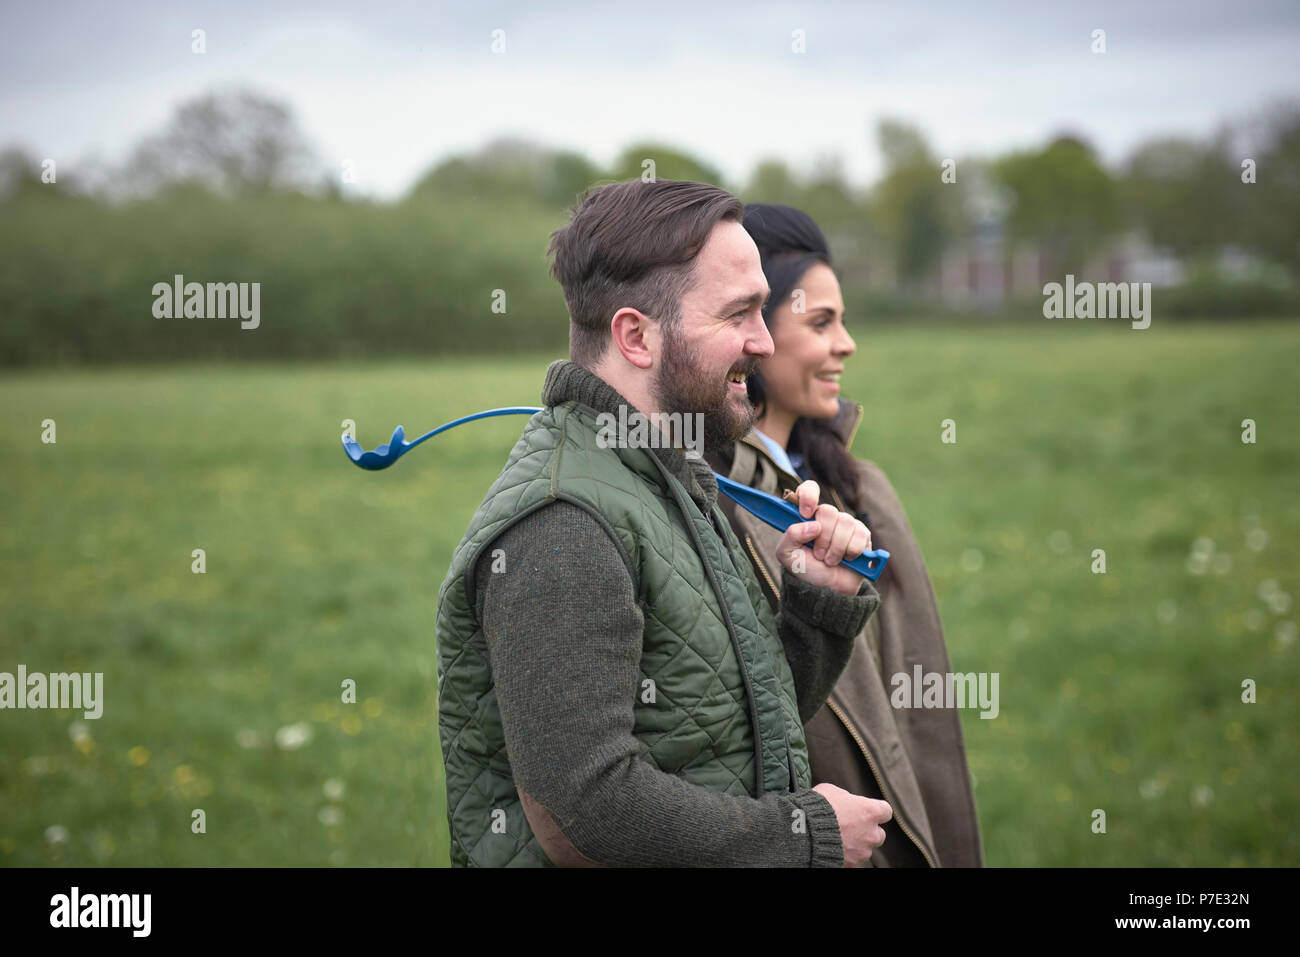 Woman and man dog walking in field - Stock Image